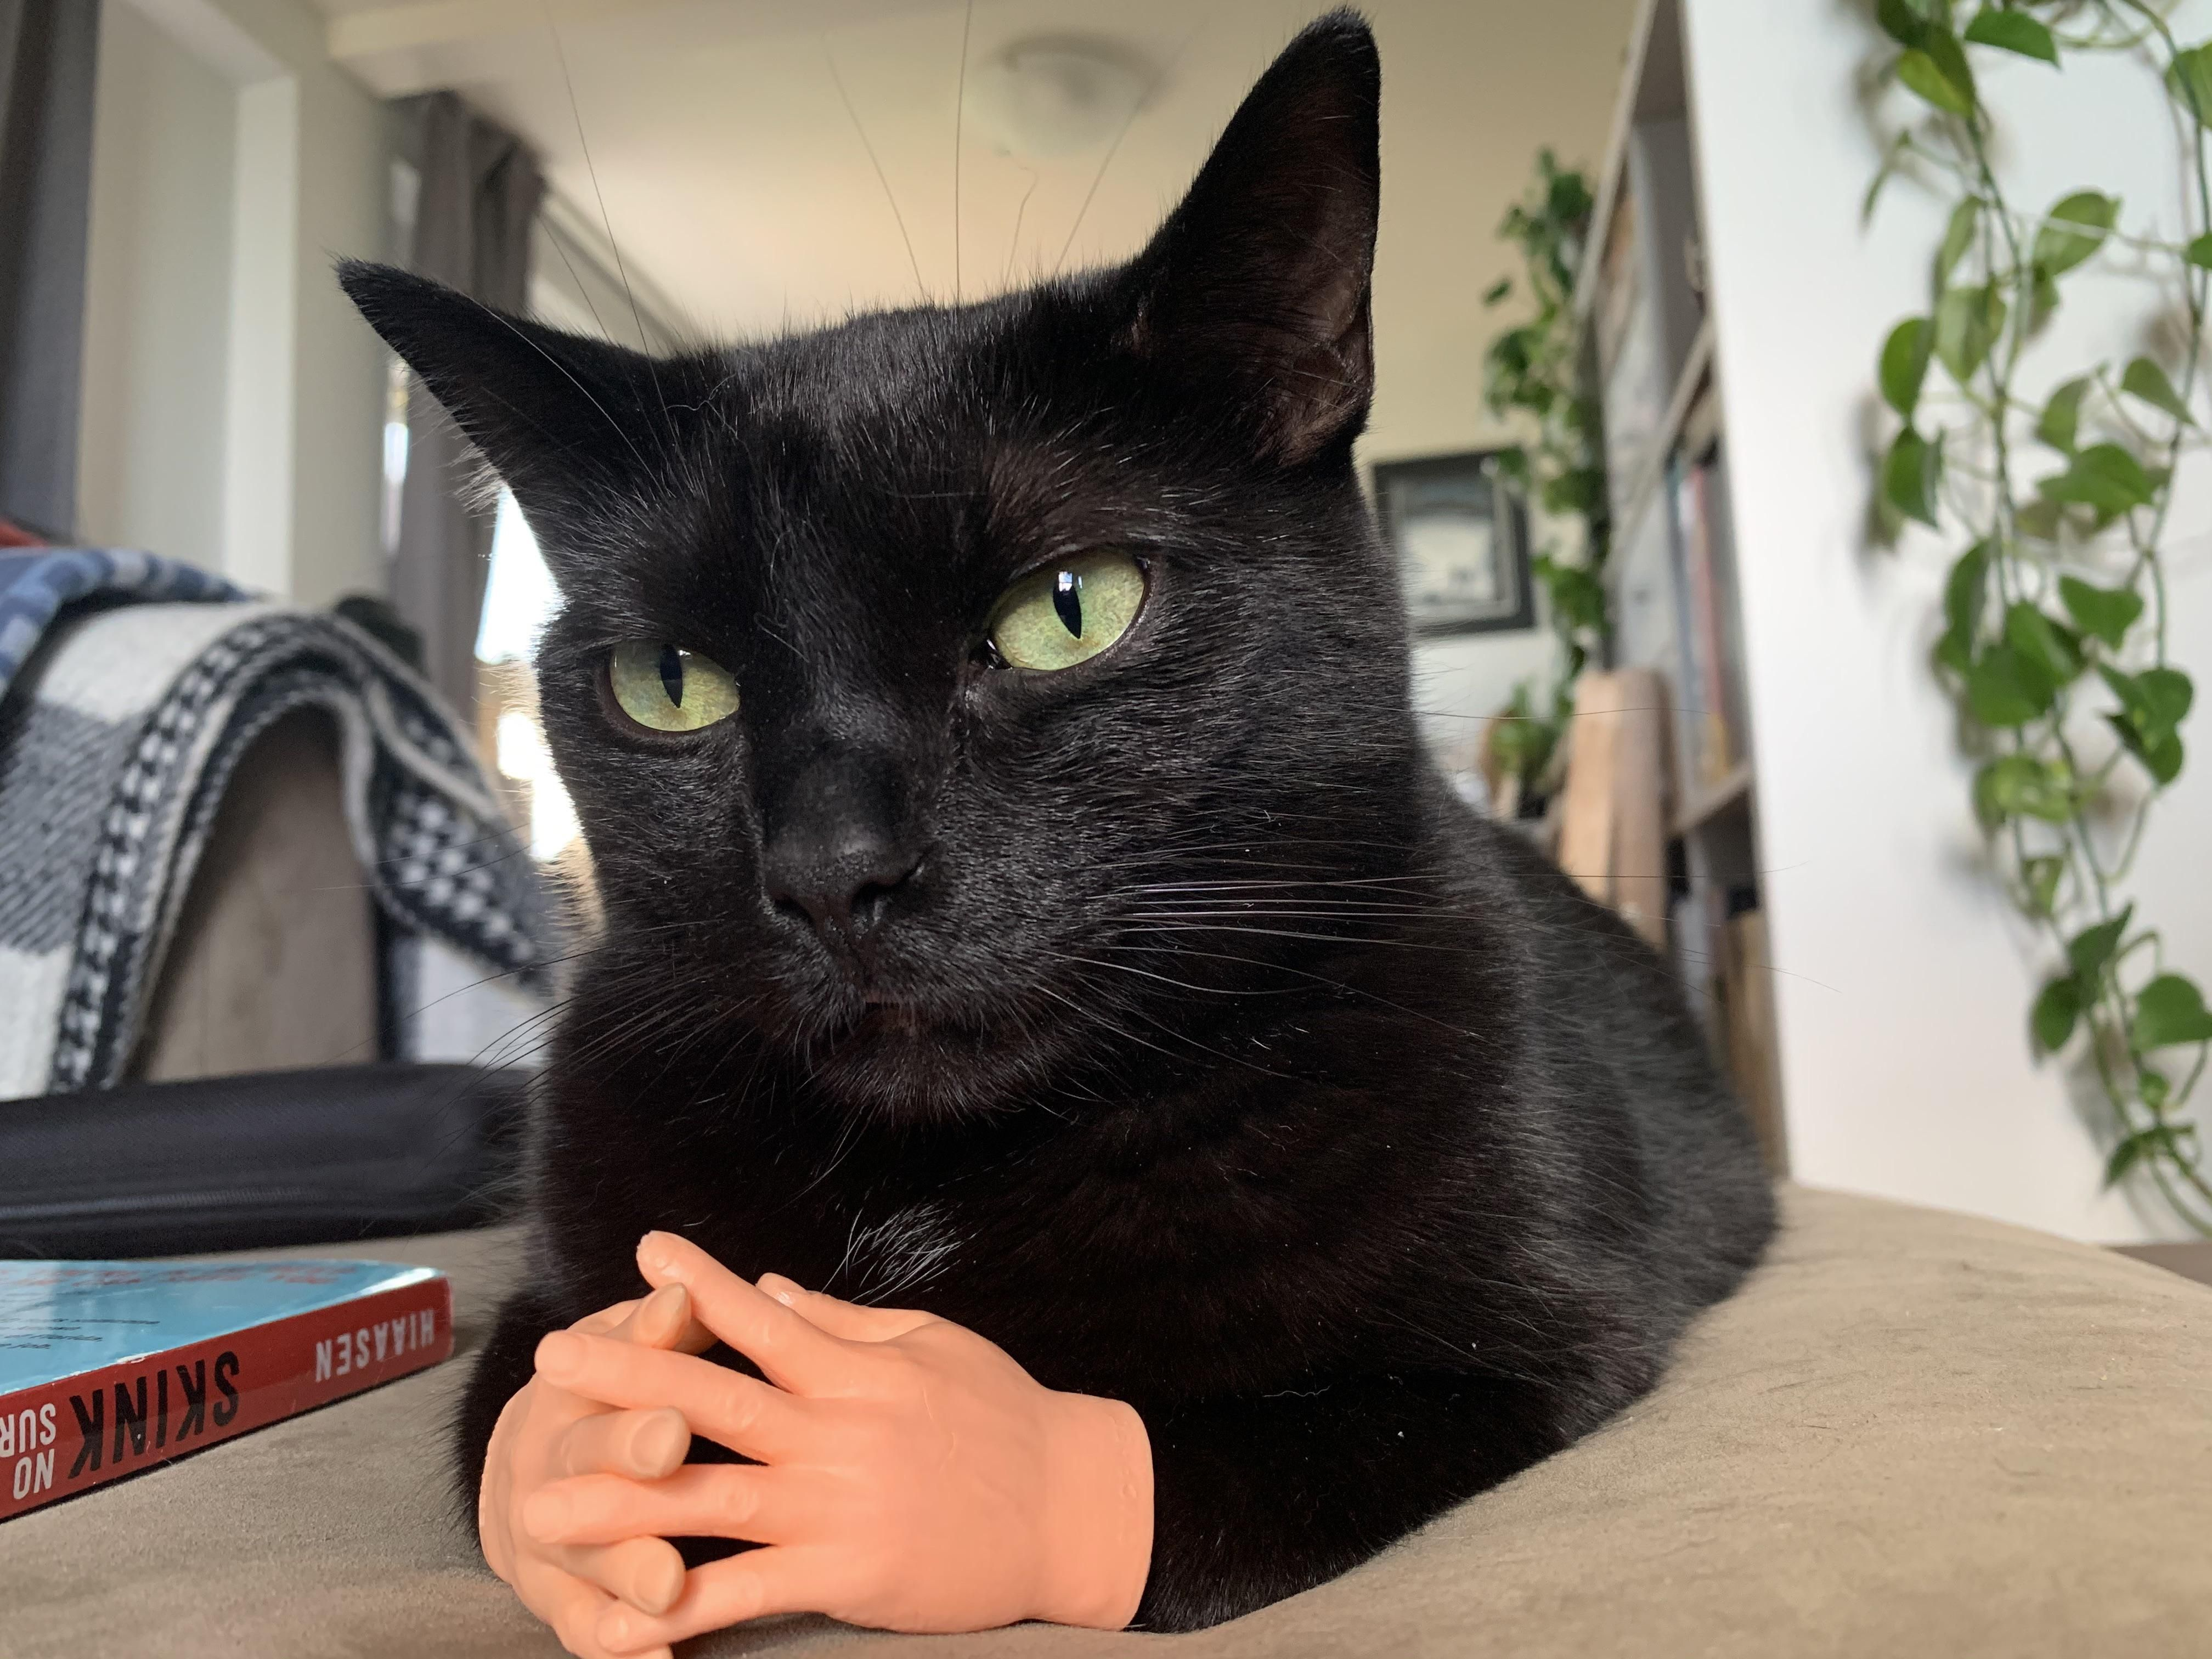 Cat + tiny rubber hands = Judgmental cat who demands an explanation.